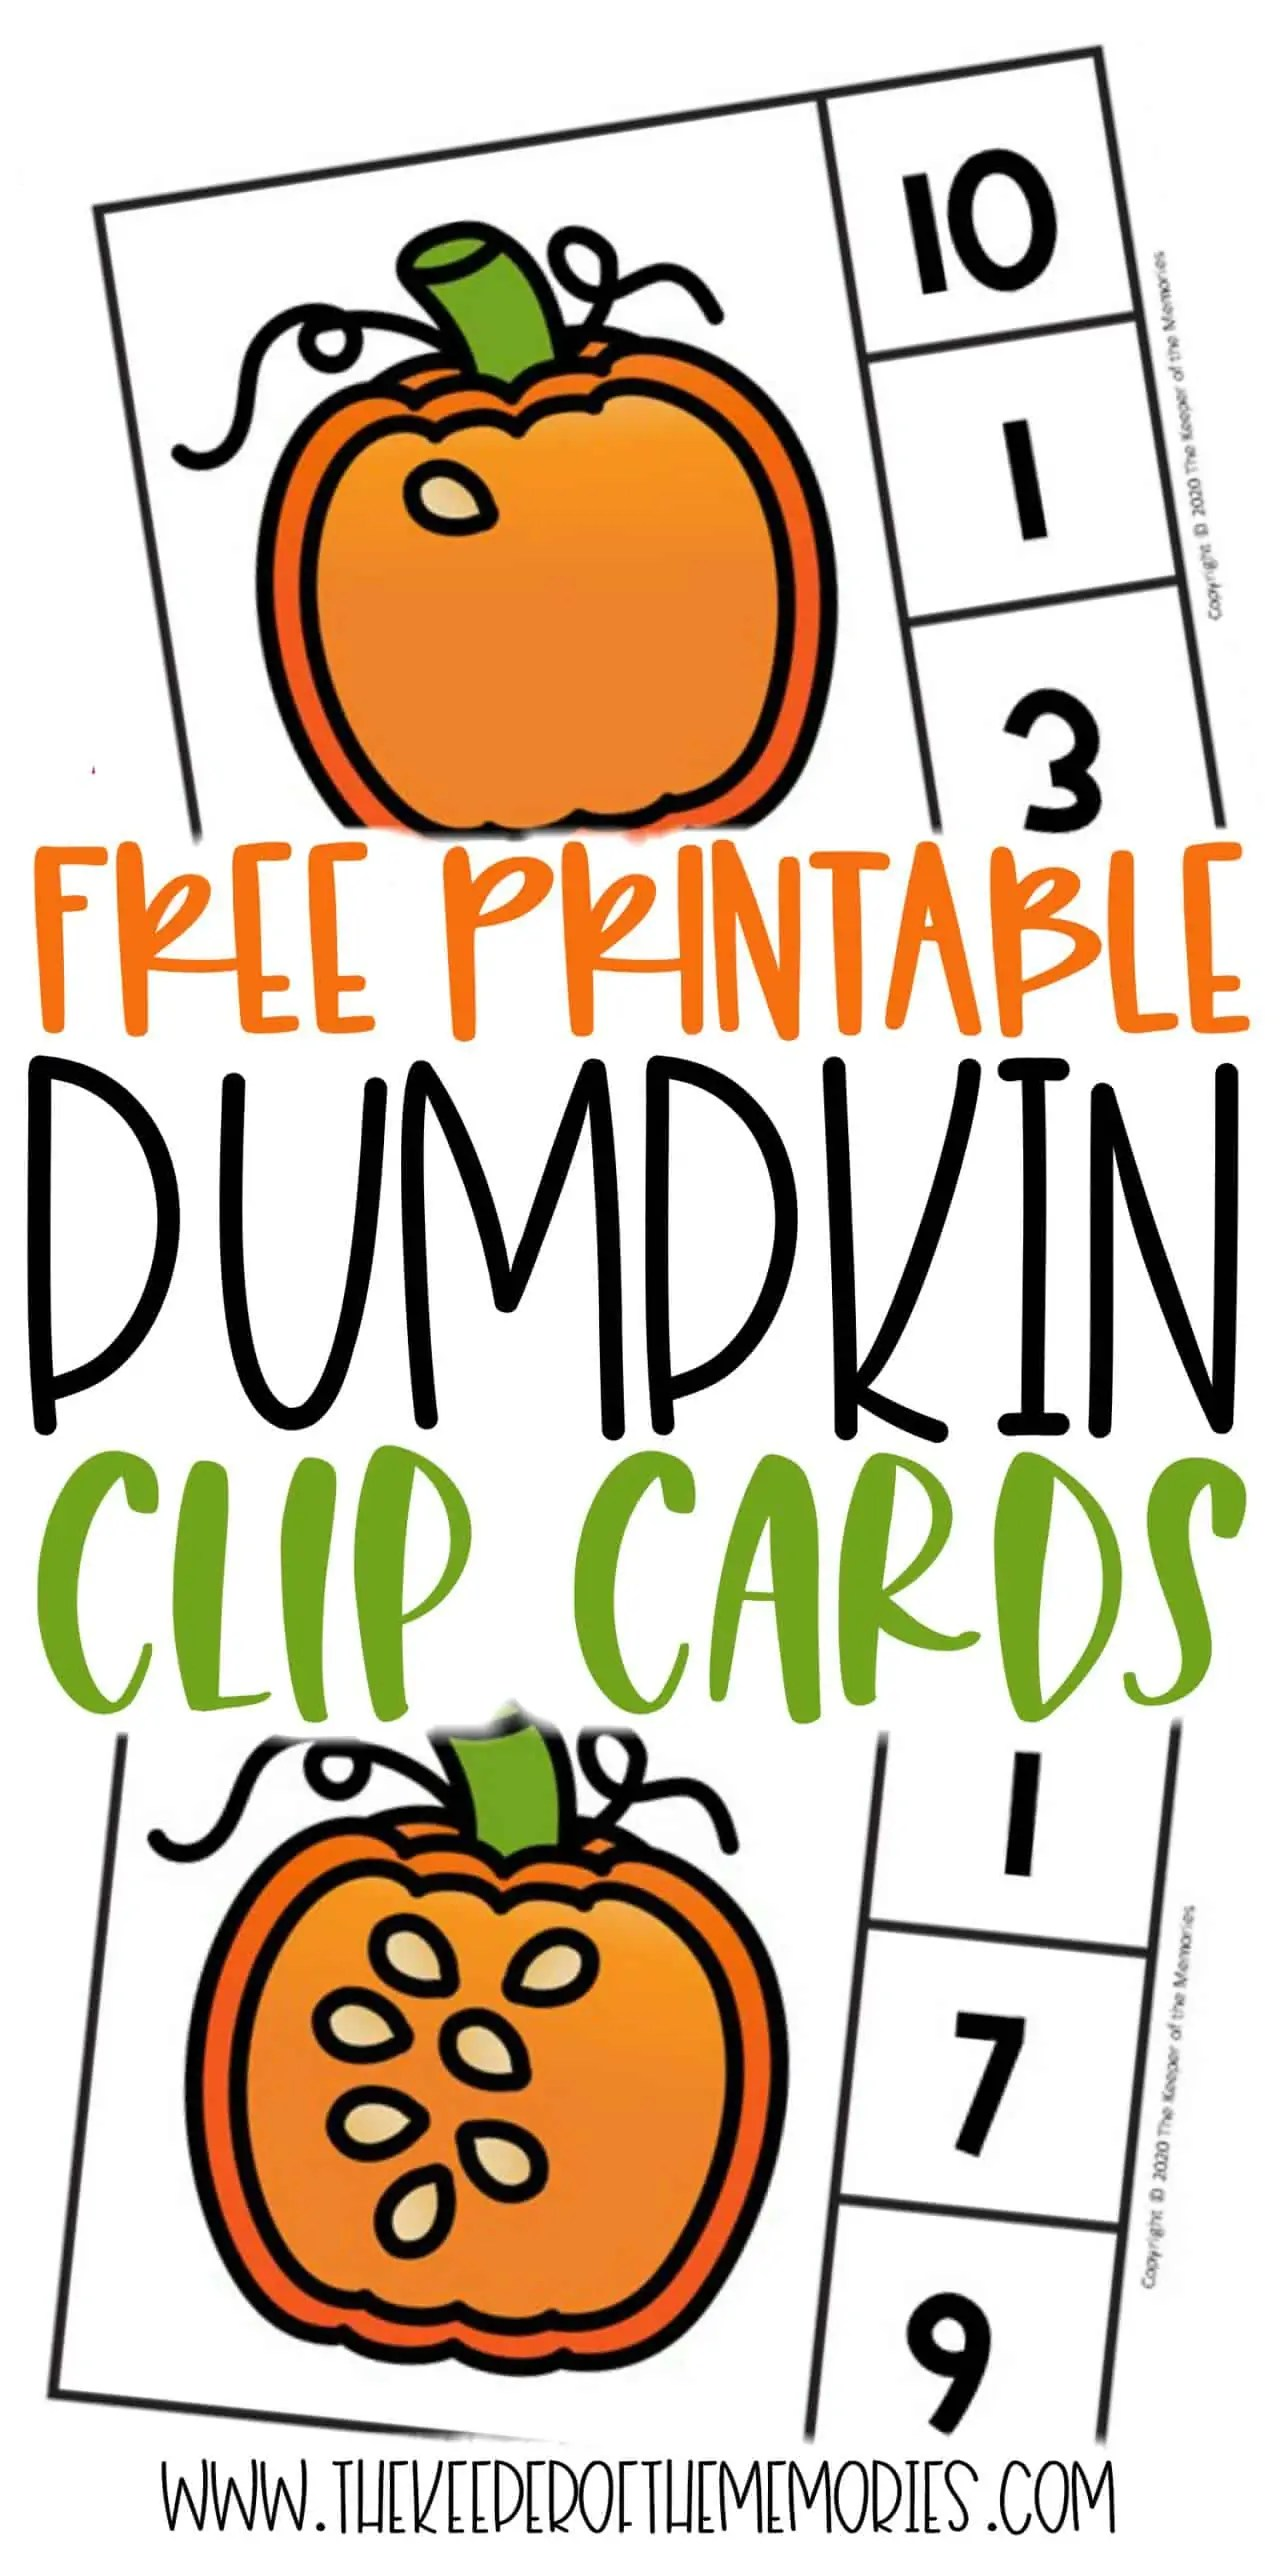 Free Printable Counting Pumpkin Seeds Counting Clip Cards